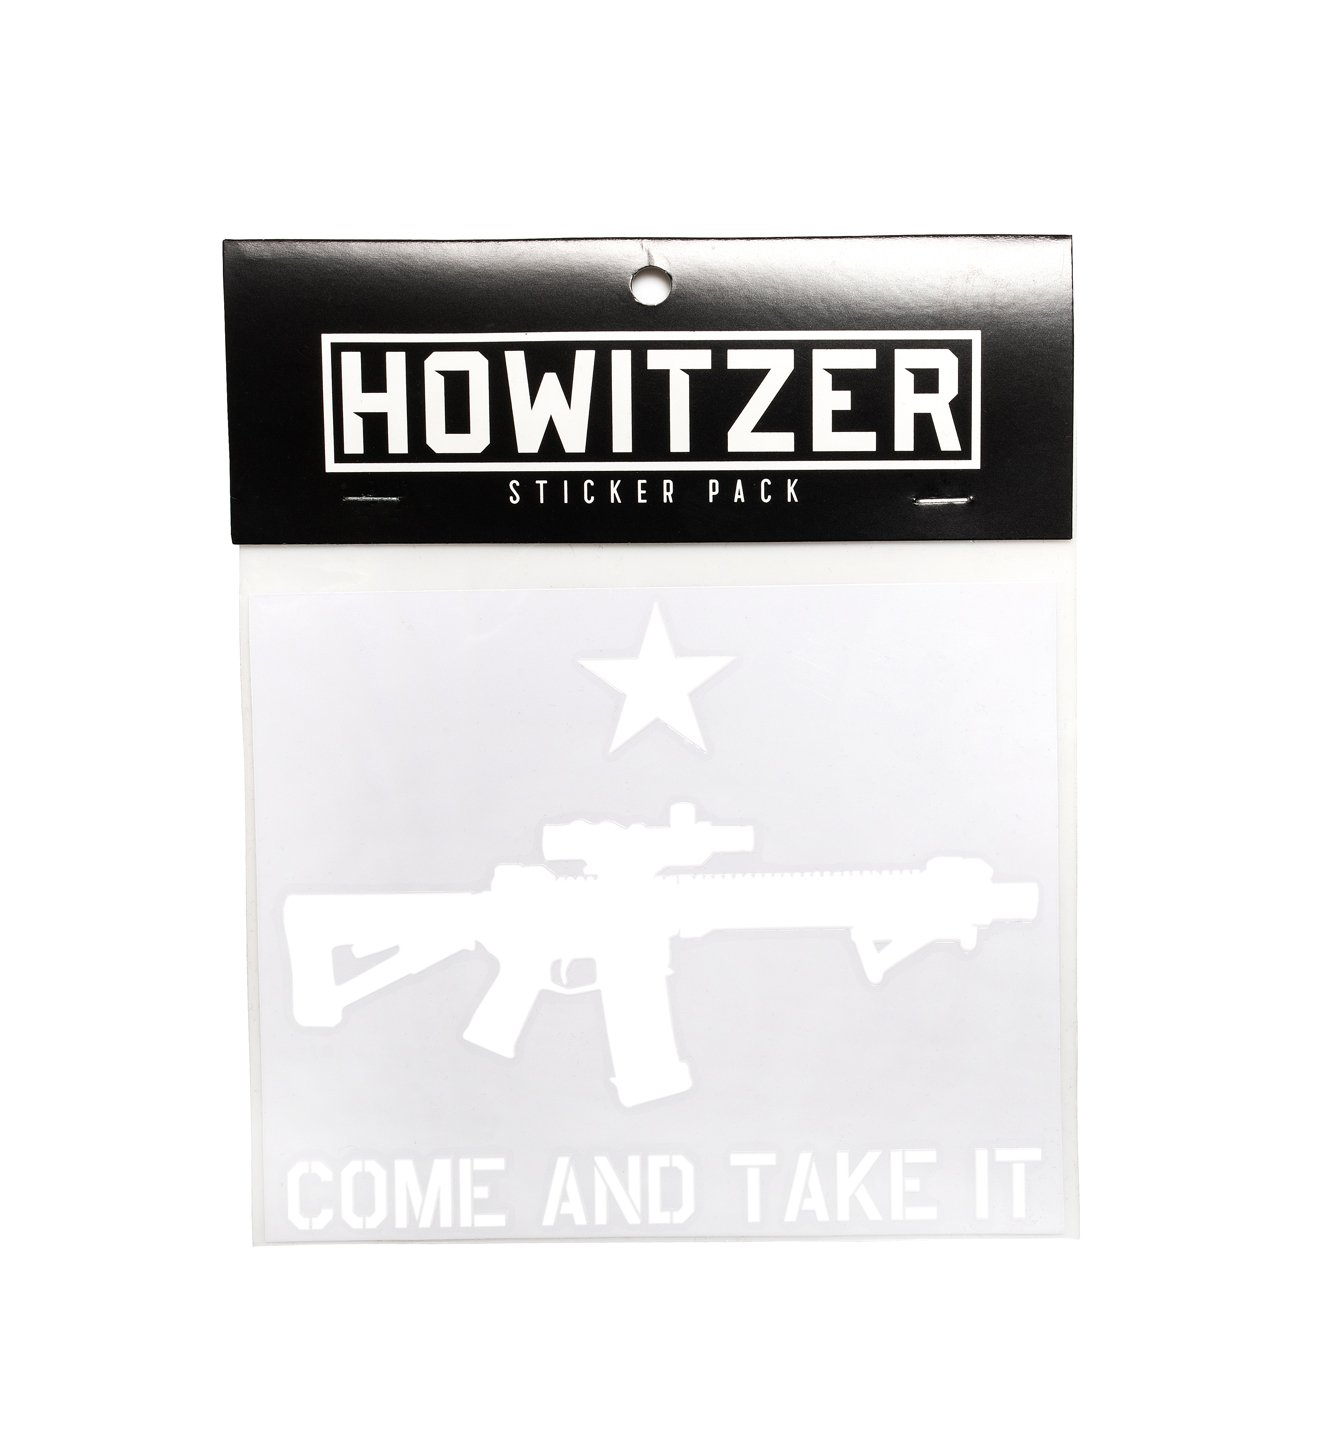 Take It Decal - Howitzer Clothing